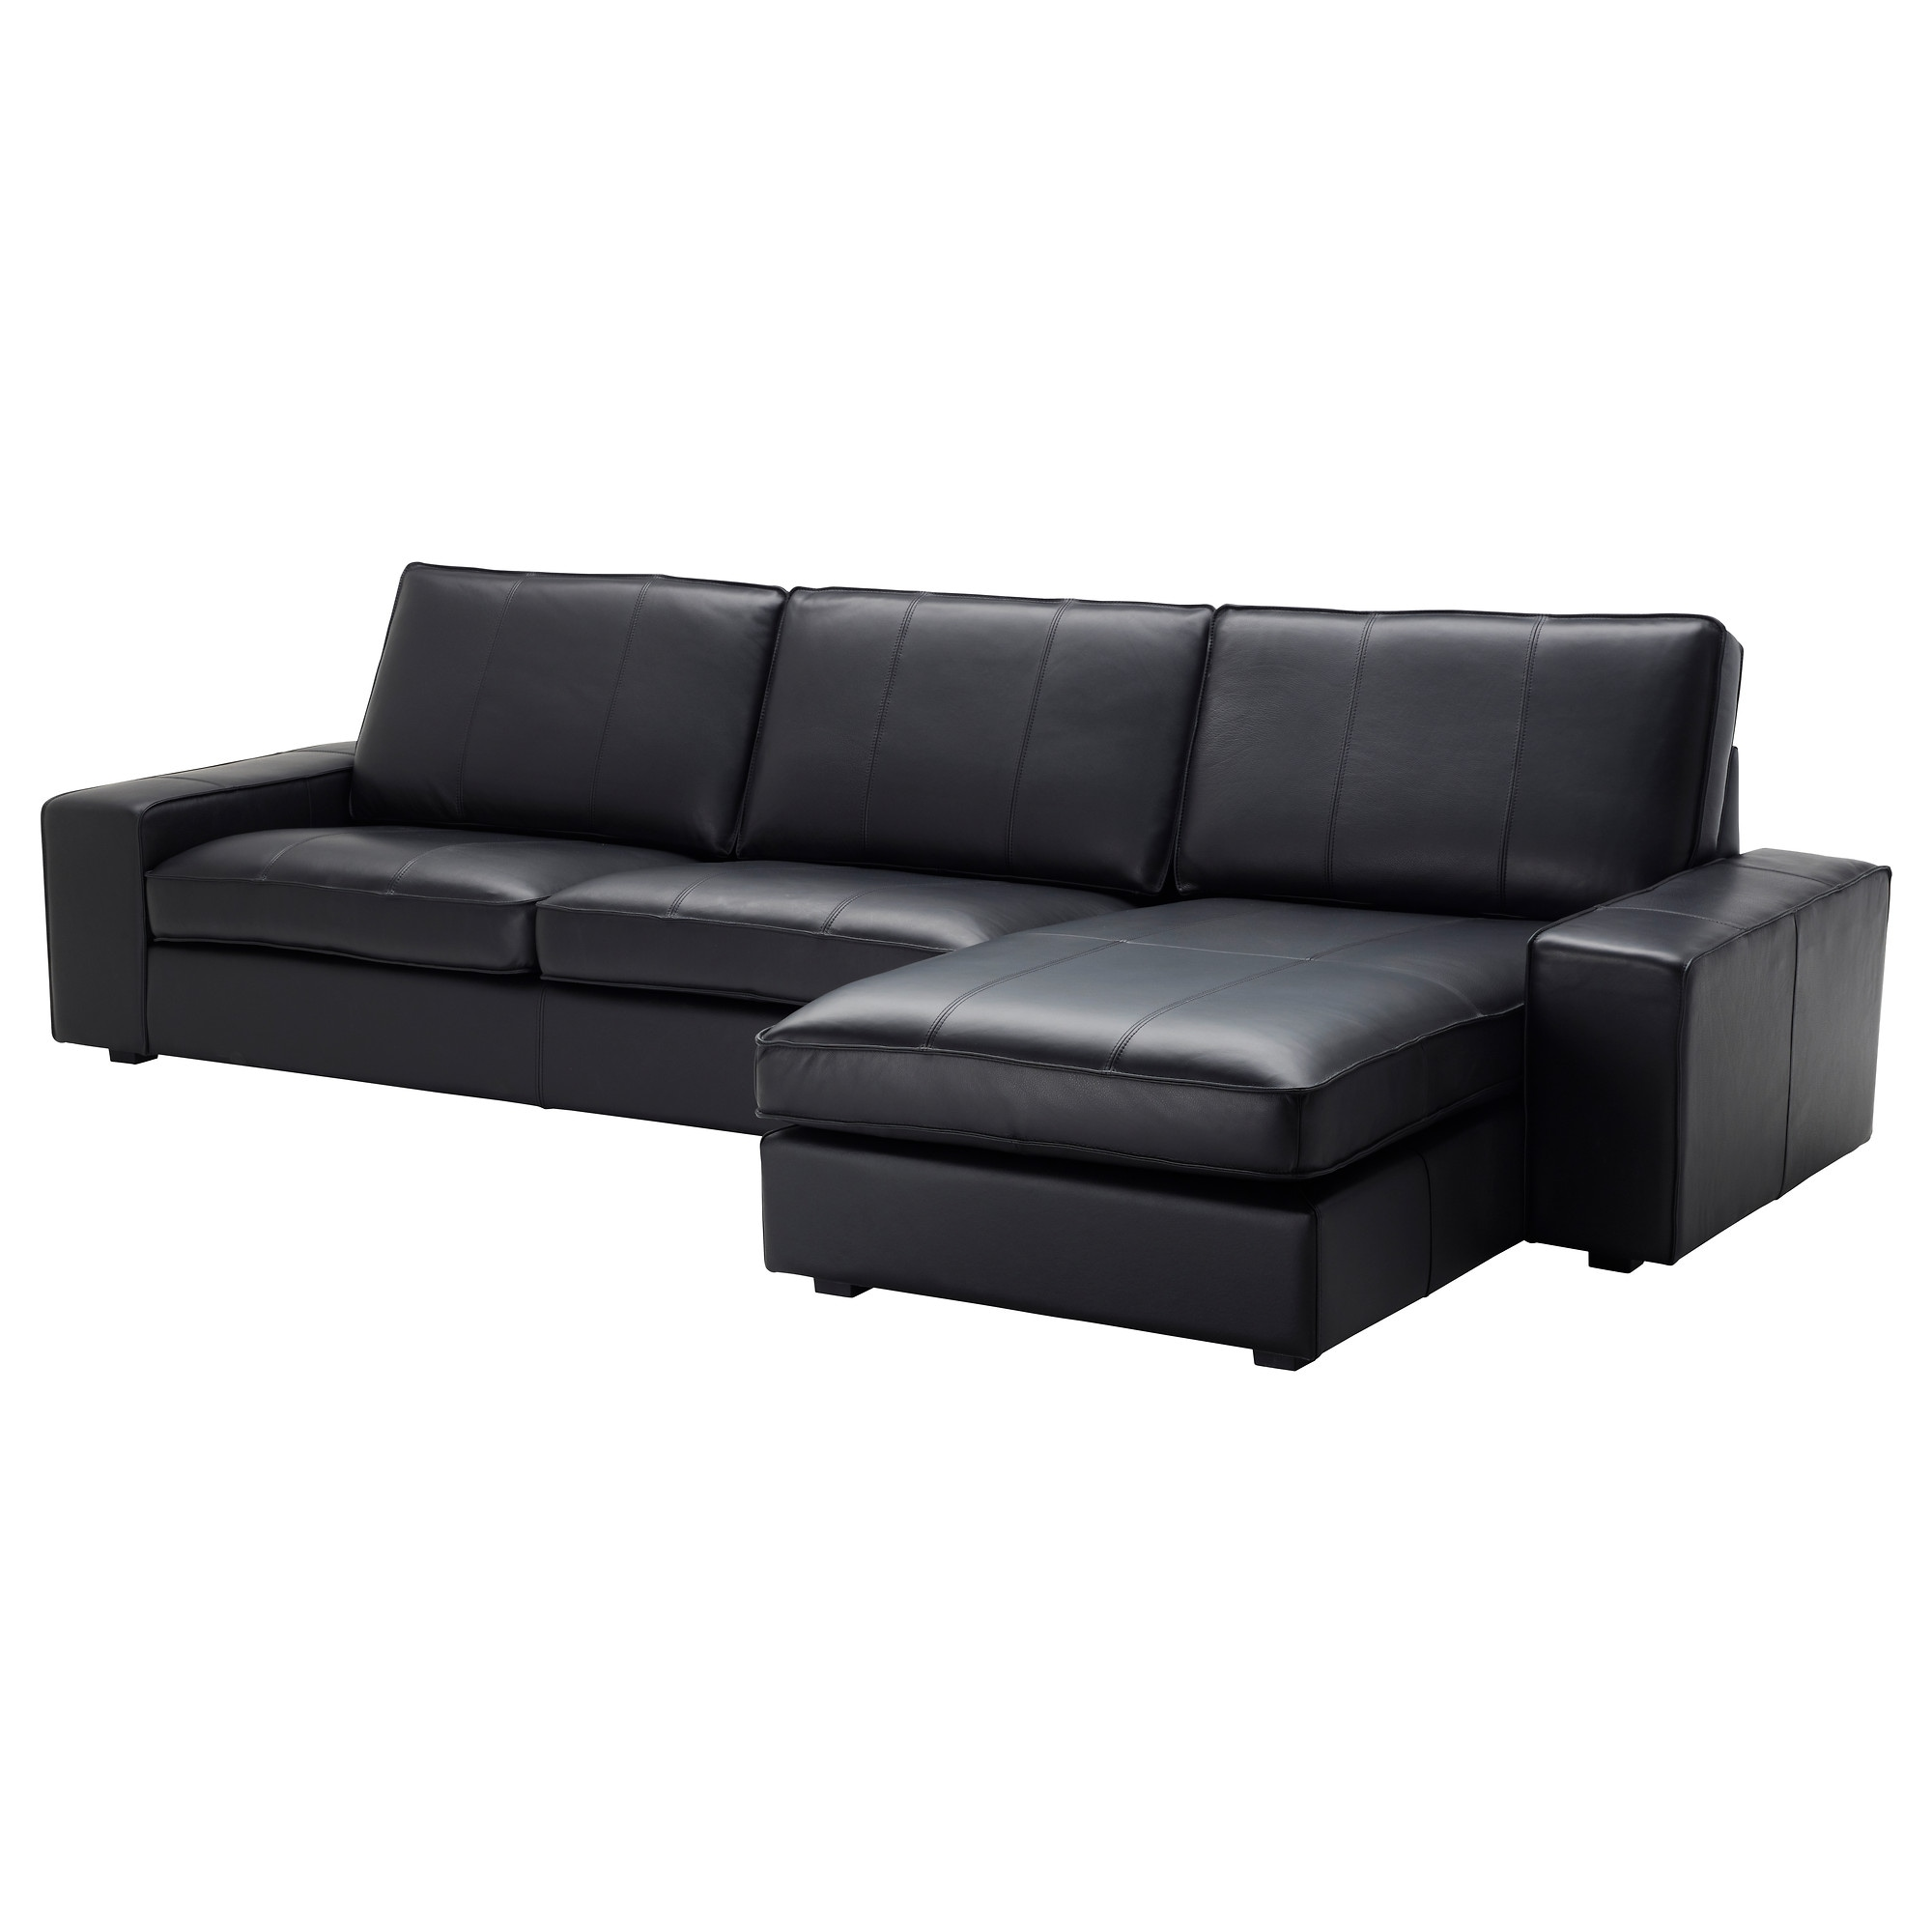 Kivik sectional 4 seat with chaisegrannbomstad black ikea parisarafo Choice Image